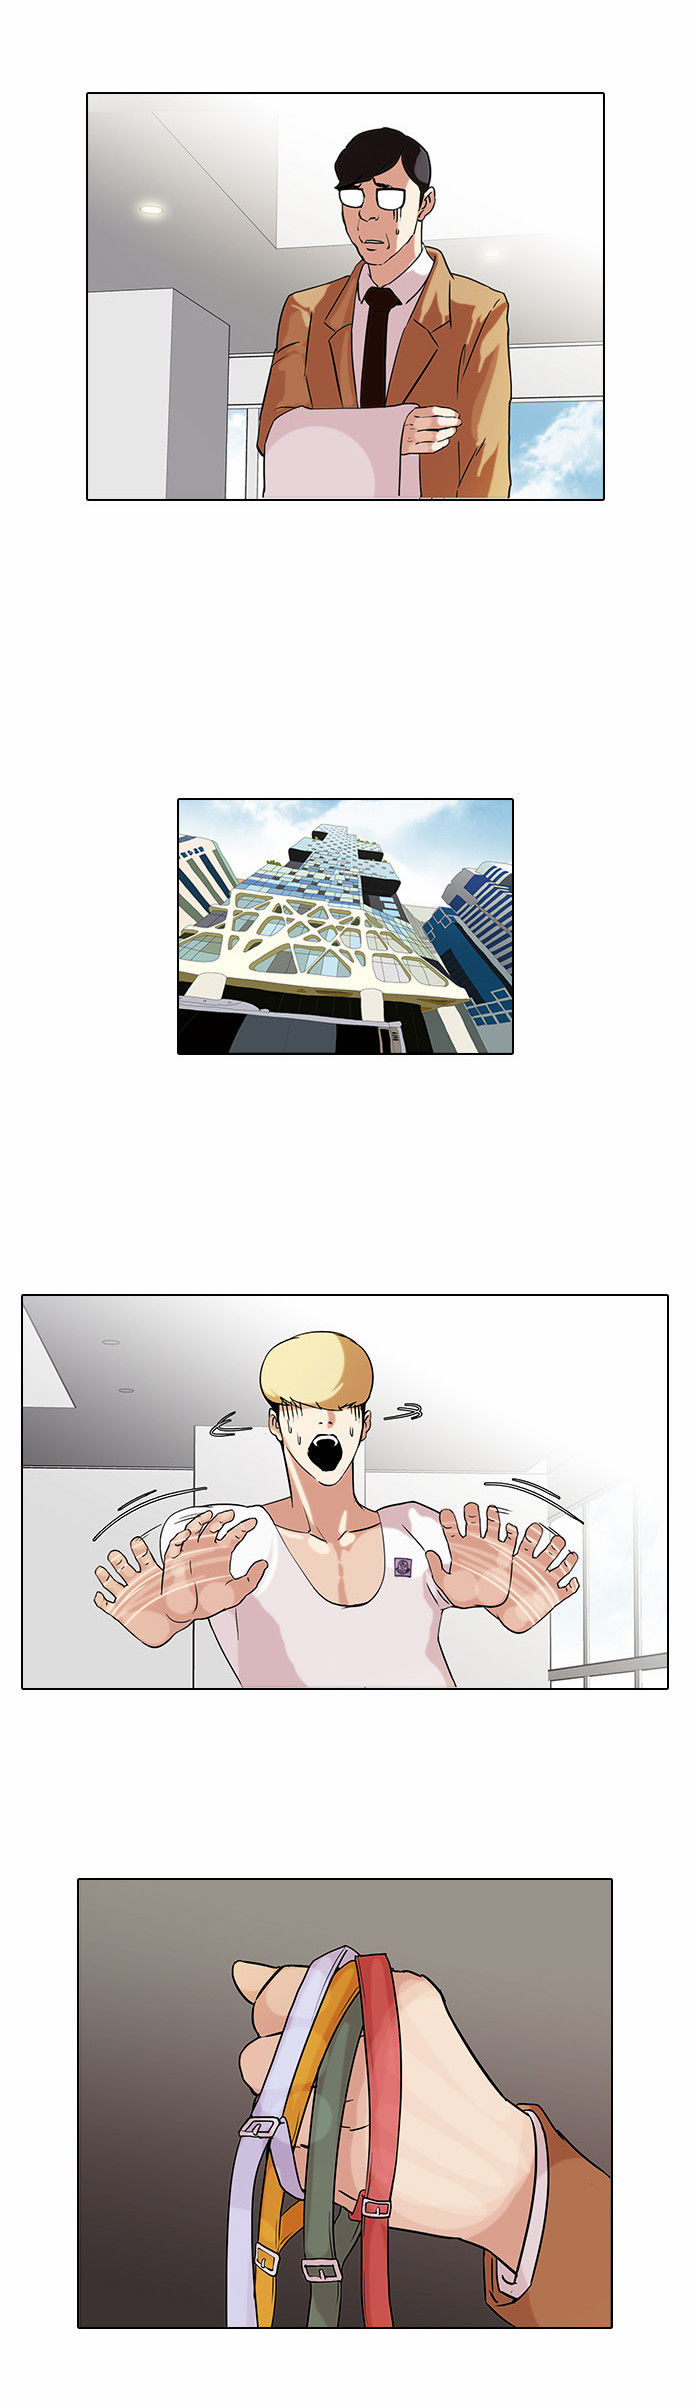 Lookism 69 Page 2